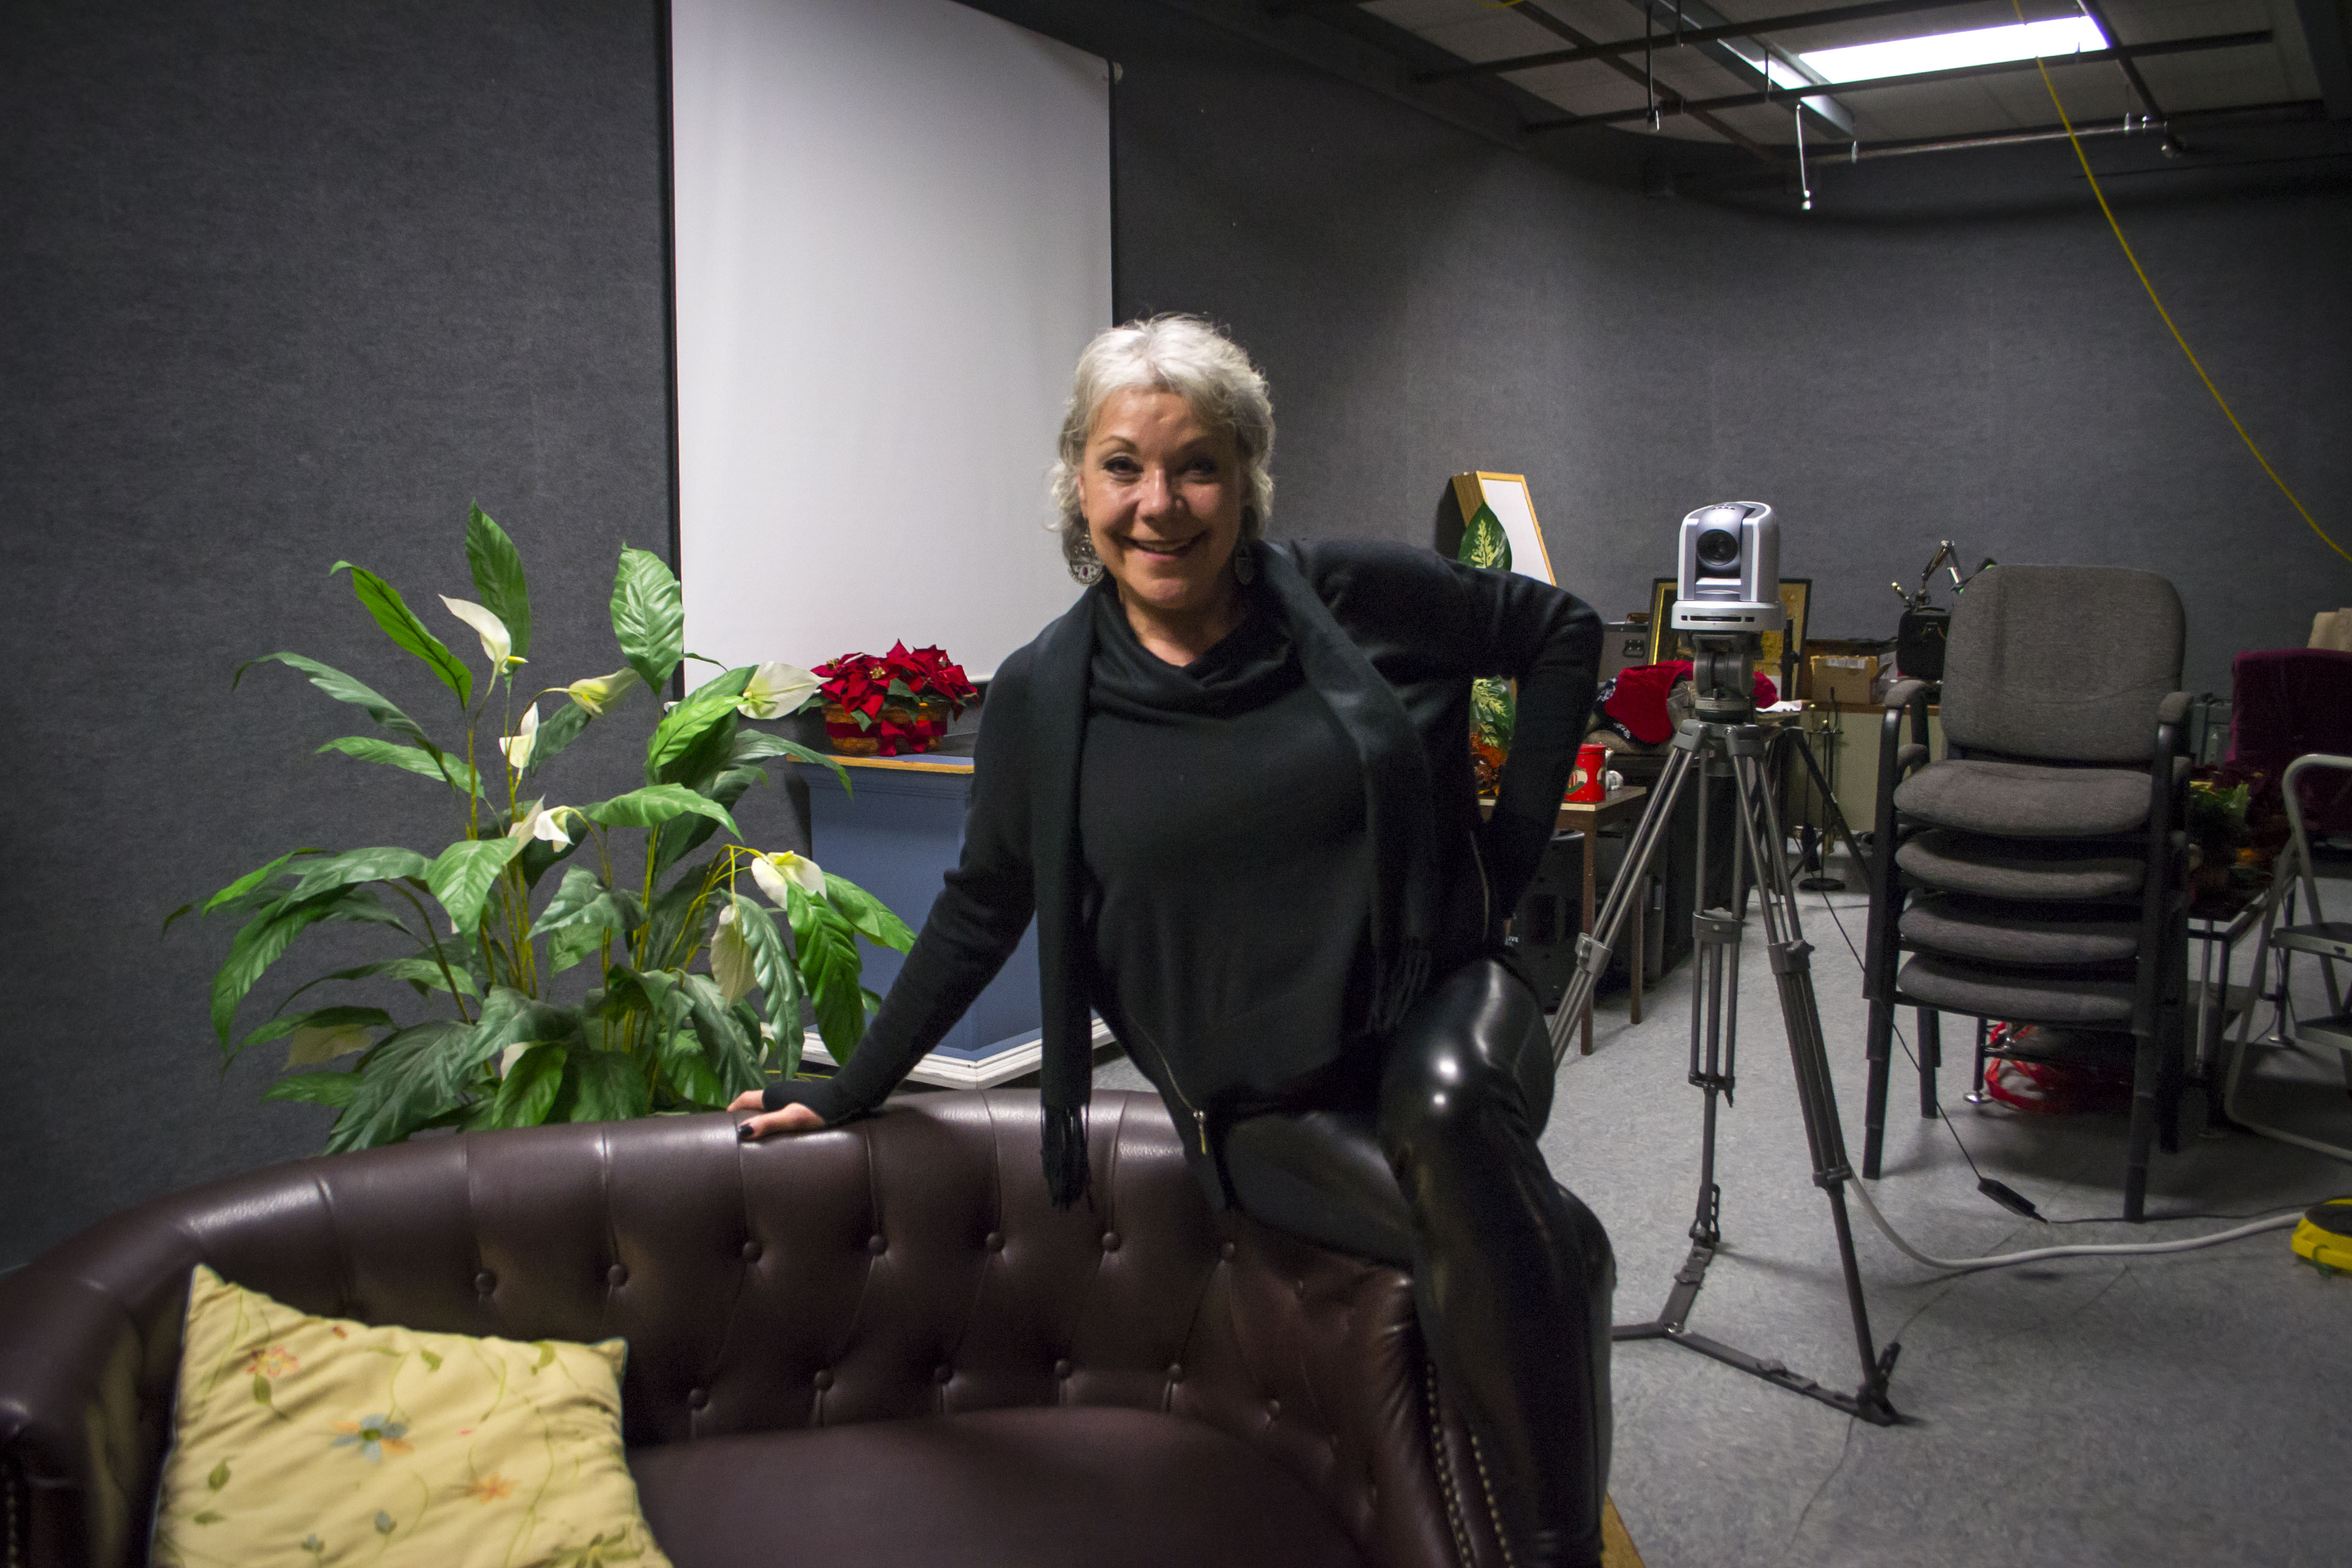 Local television host Toni Sipka, who formerly portrayed Marvel Comics' Spider-Woman, will be offering a free studio production program in February. ALAN BENNETT/Journal Tribune